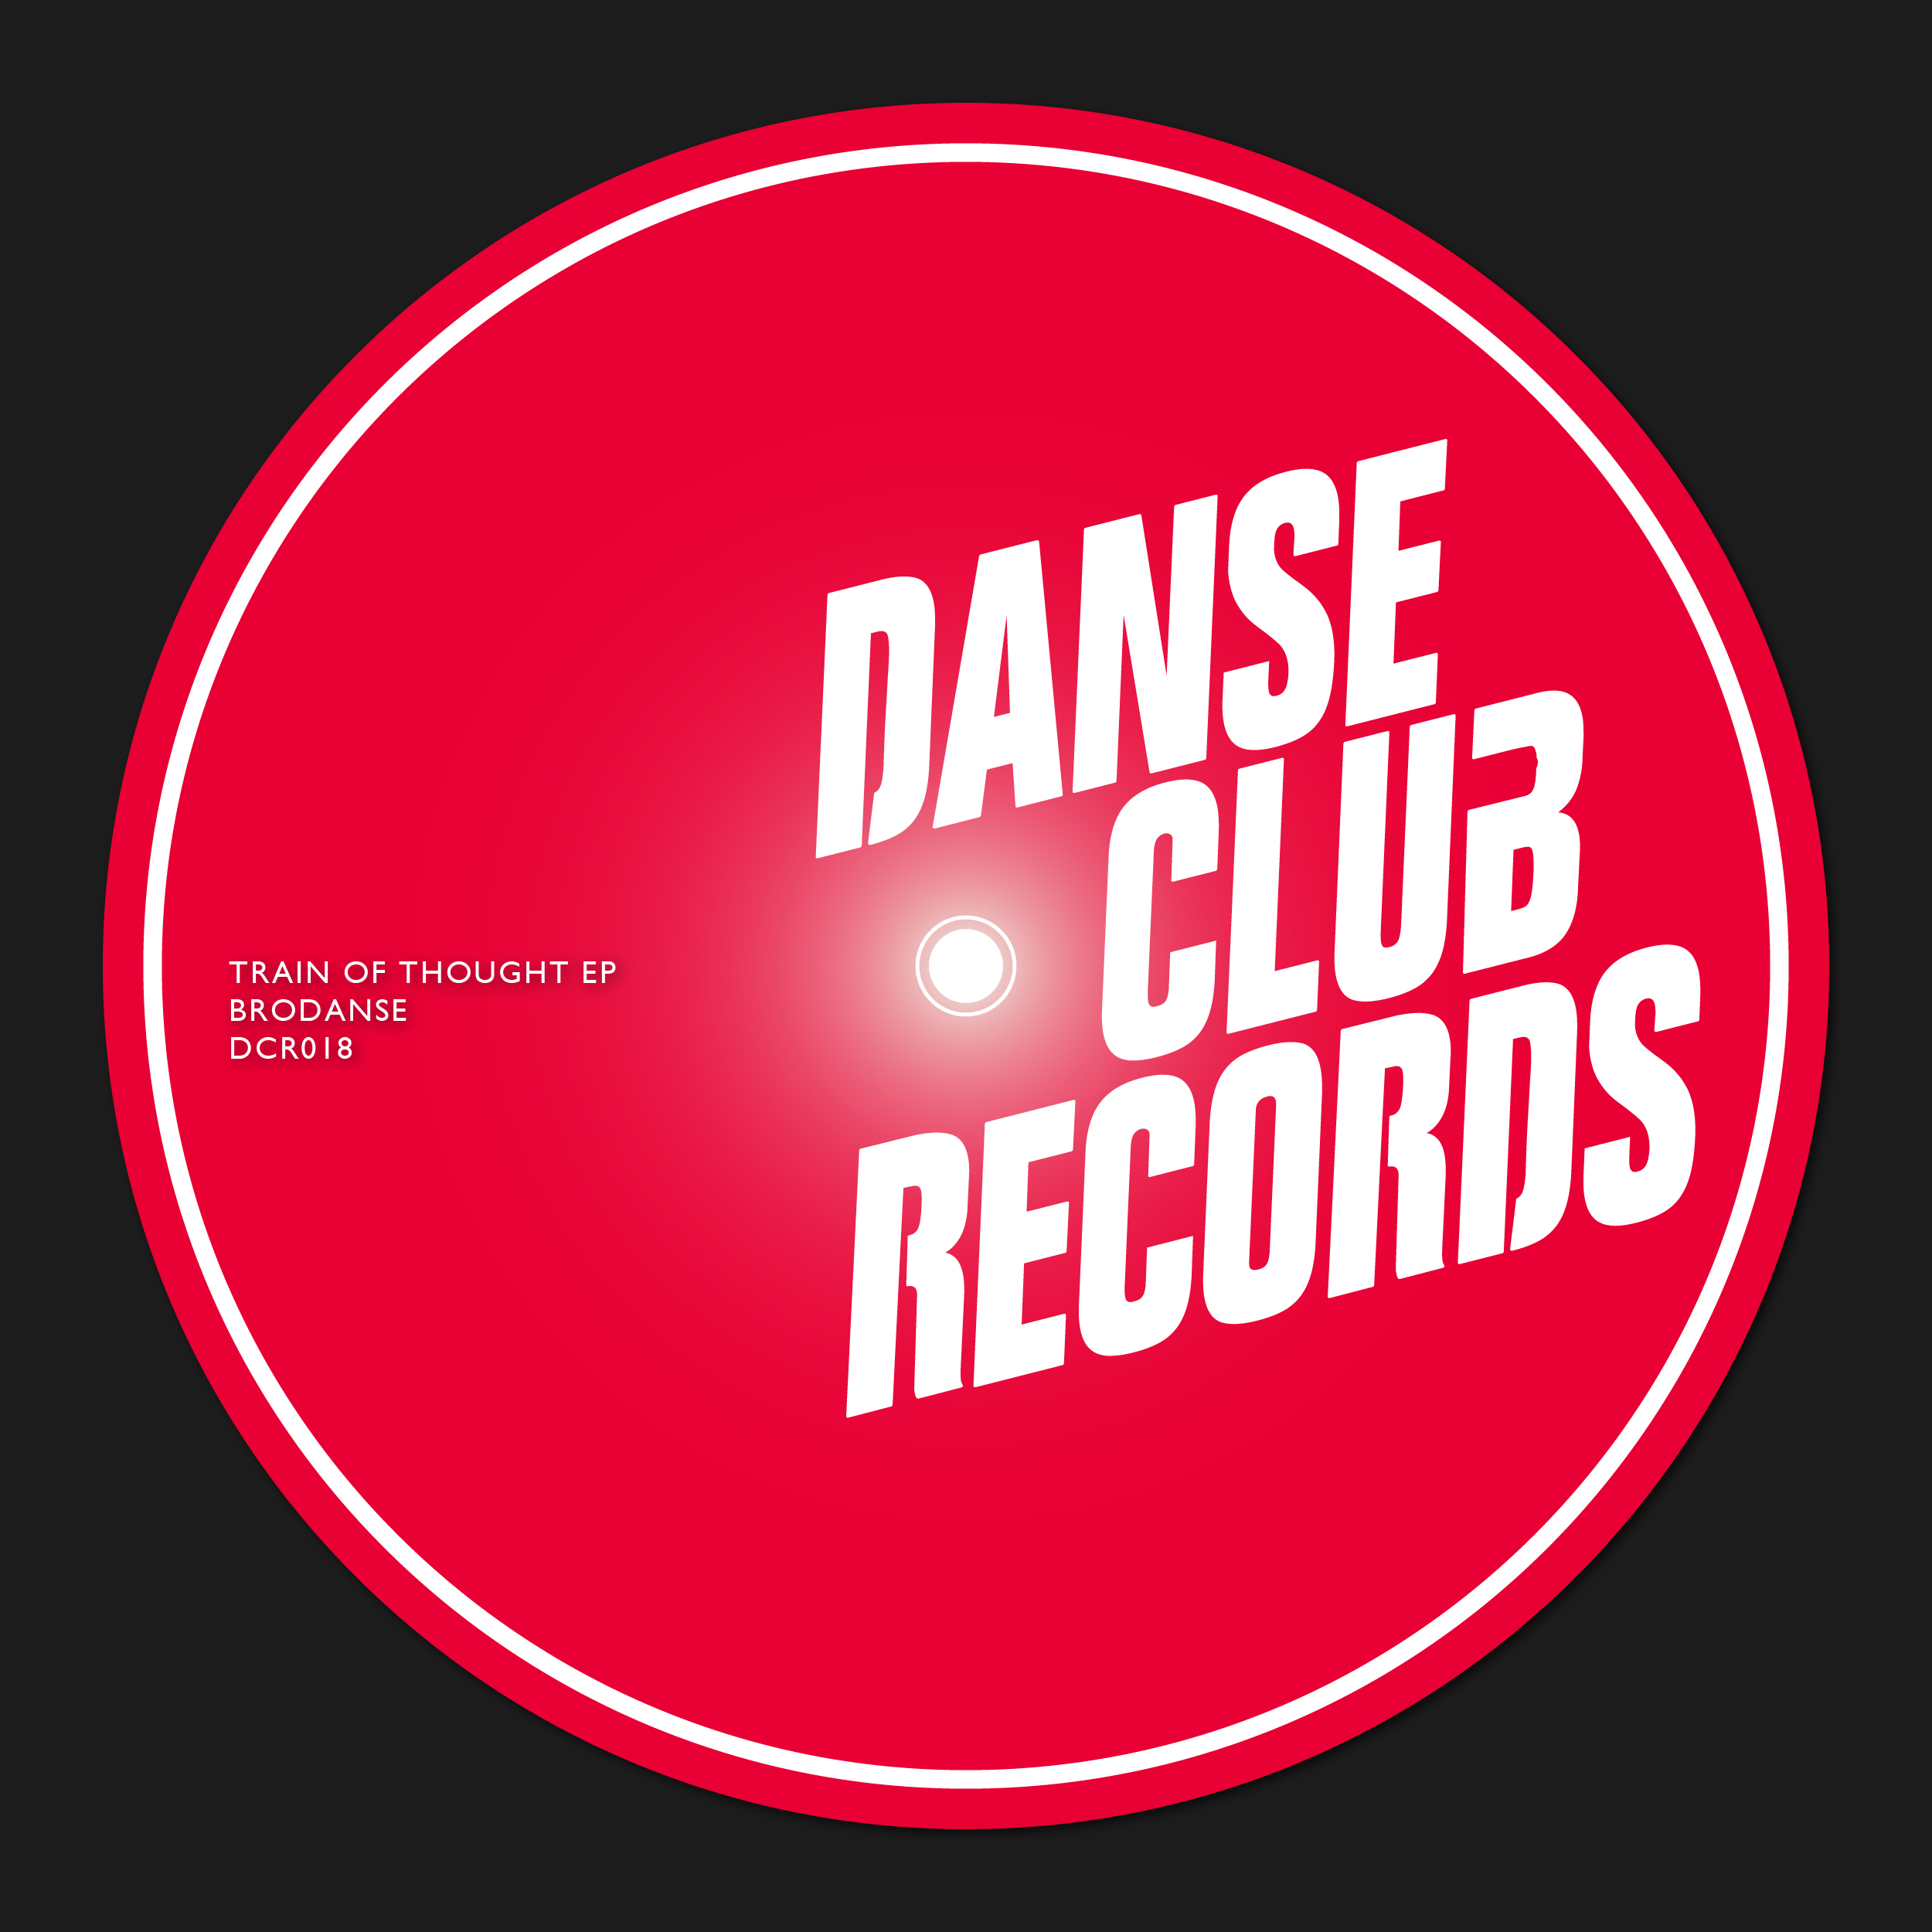 Brodanse – Train Of Thought EP (Danse Club Records)